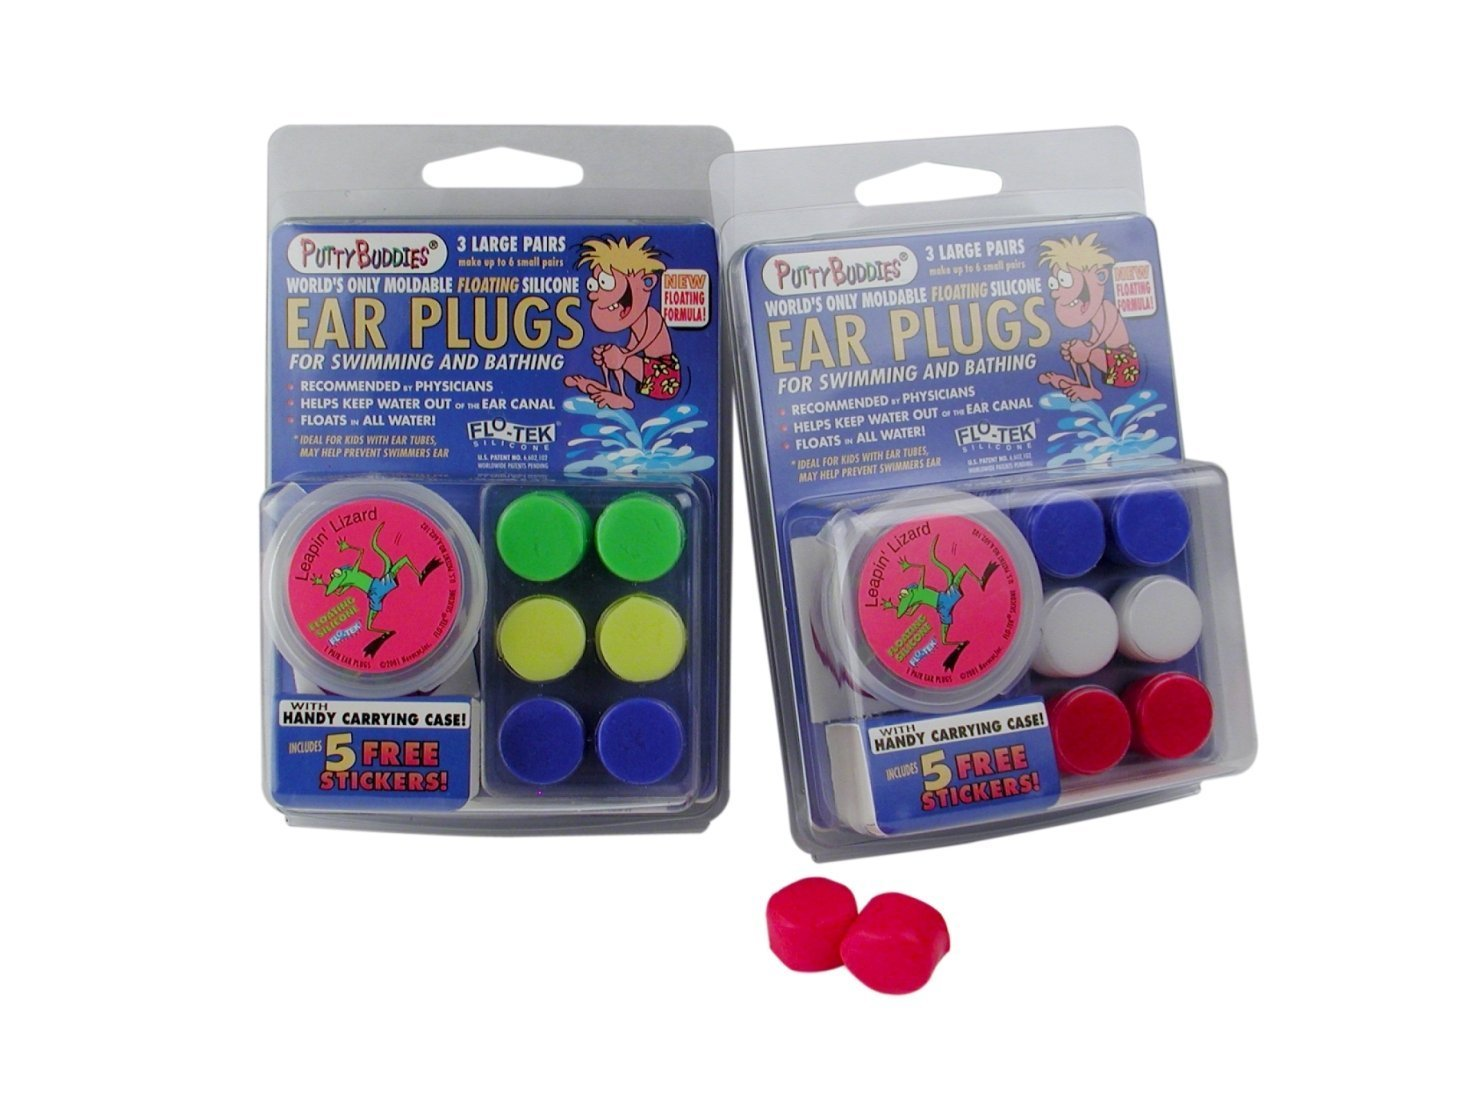 2 PACK!!! 6 Pair Putty Buddies WaterBlock Swimming Ear Plugs - Qty.2 3packs Included - Yellow, Green, Blue Color Ear Plugs